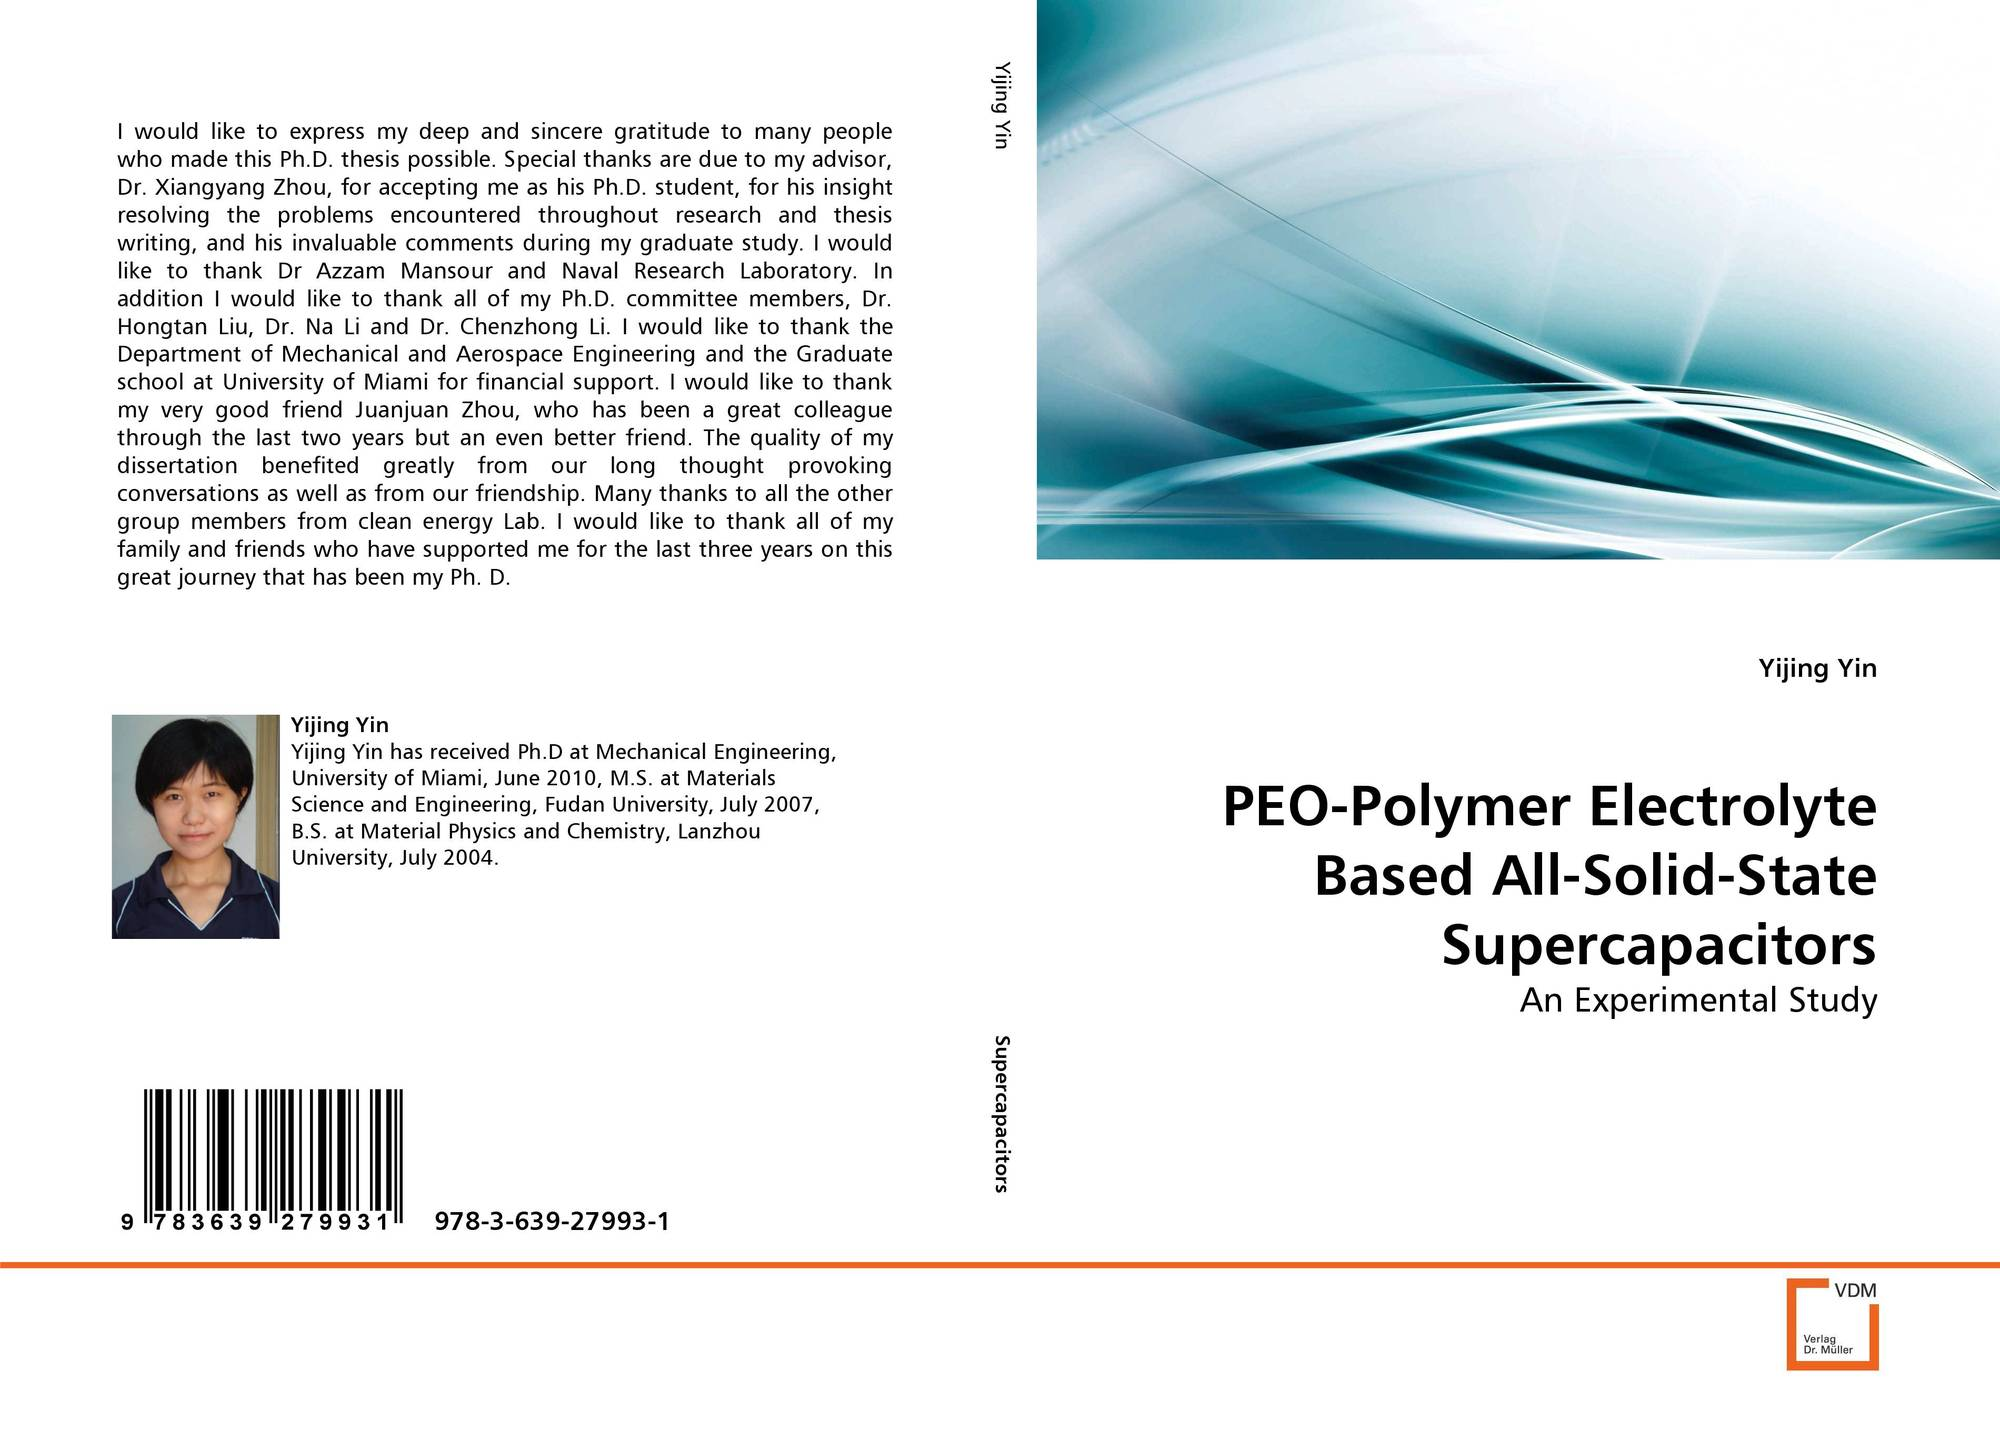 PEO-Polymer Electrolyte Based All-Solid-State